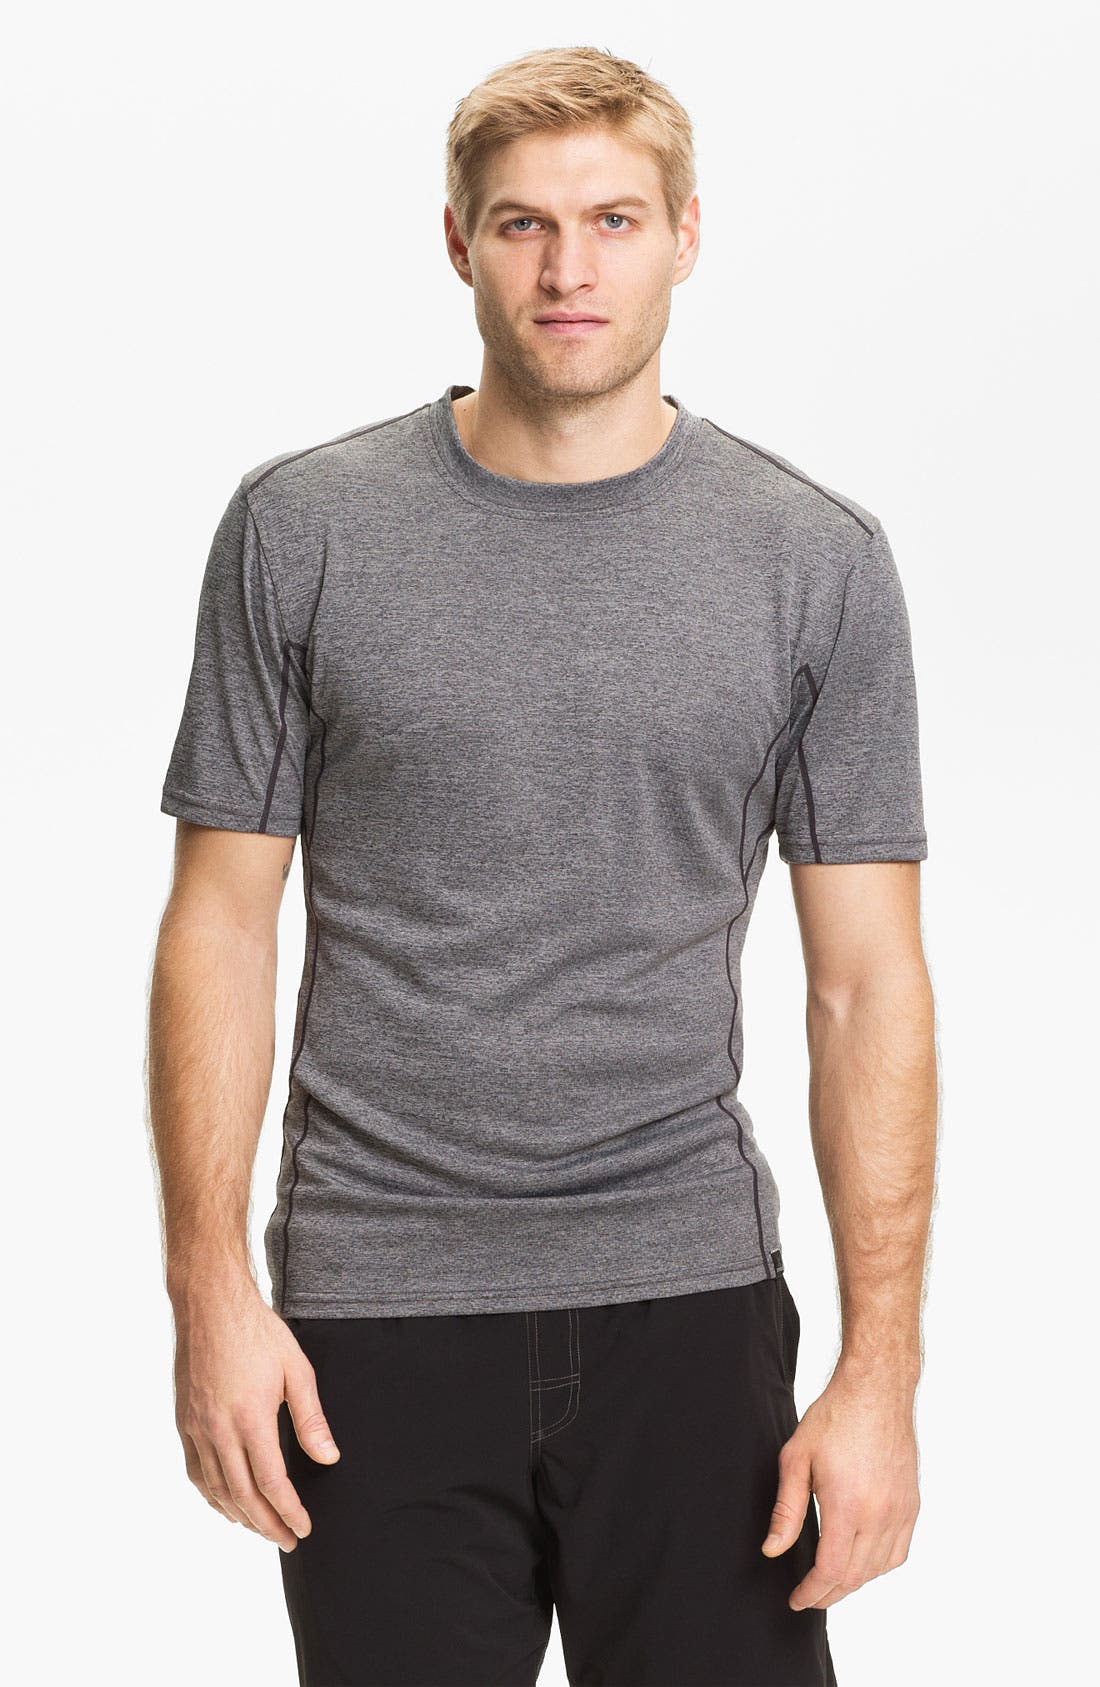 Main Image - prAna T-Shirt & Shorts